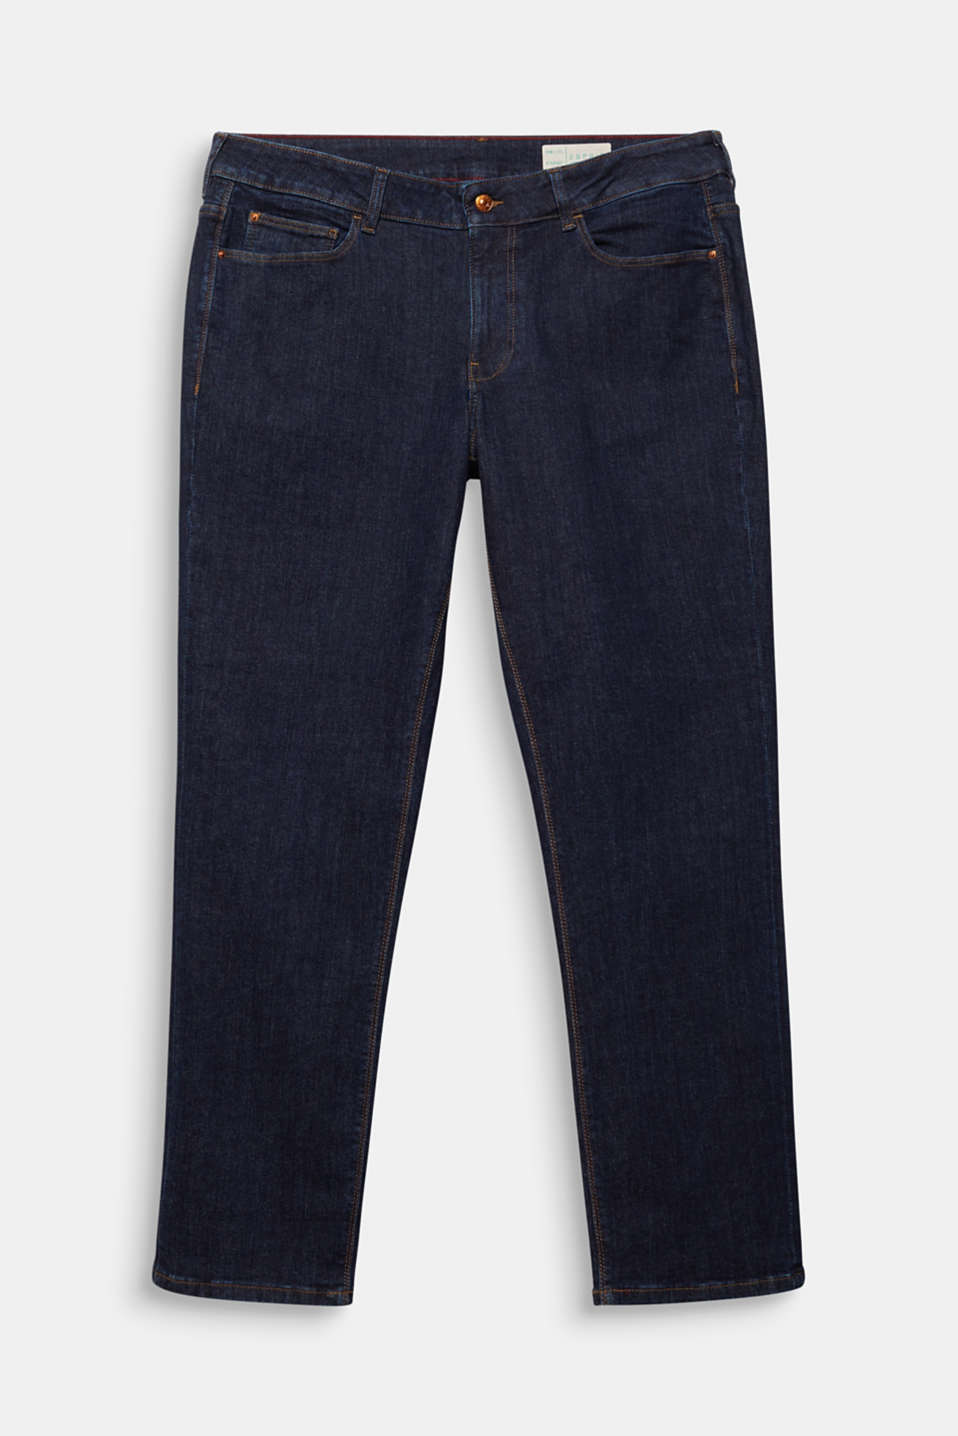 CURVY basic jeans with added stretch for comfort, BLUE RINSE, detail image number 7